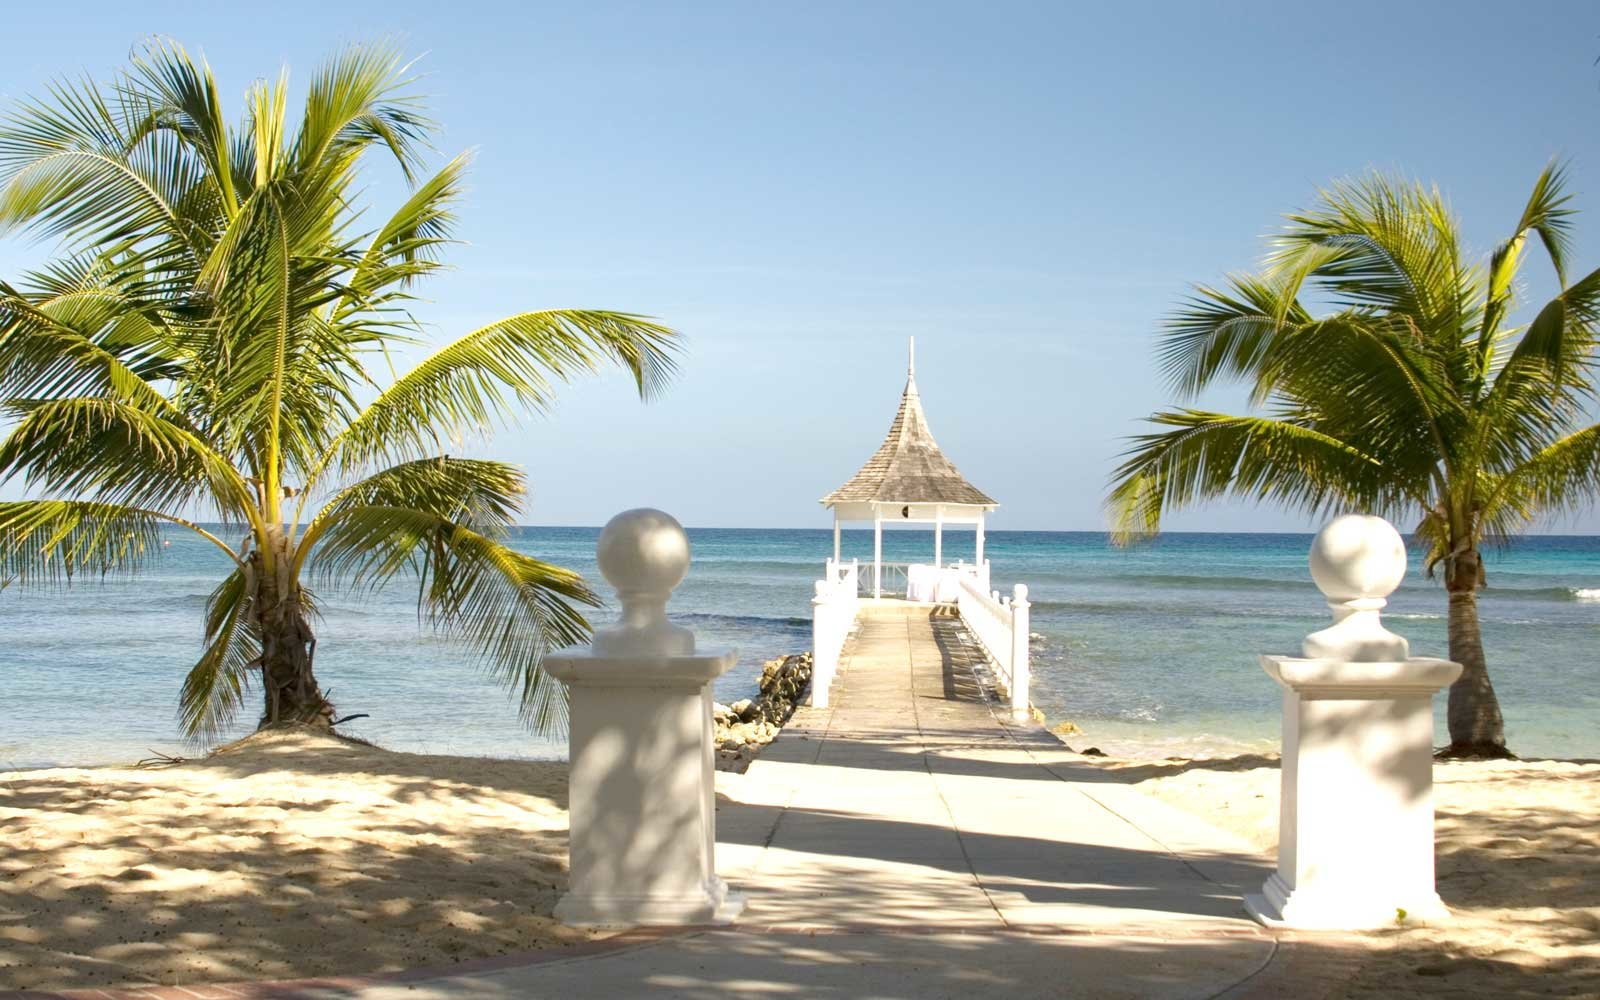 Luxurious gazebo at the  Halfmoon Beach  in Jamaica near Montego Bay